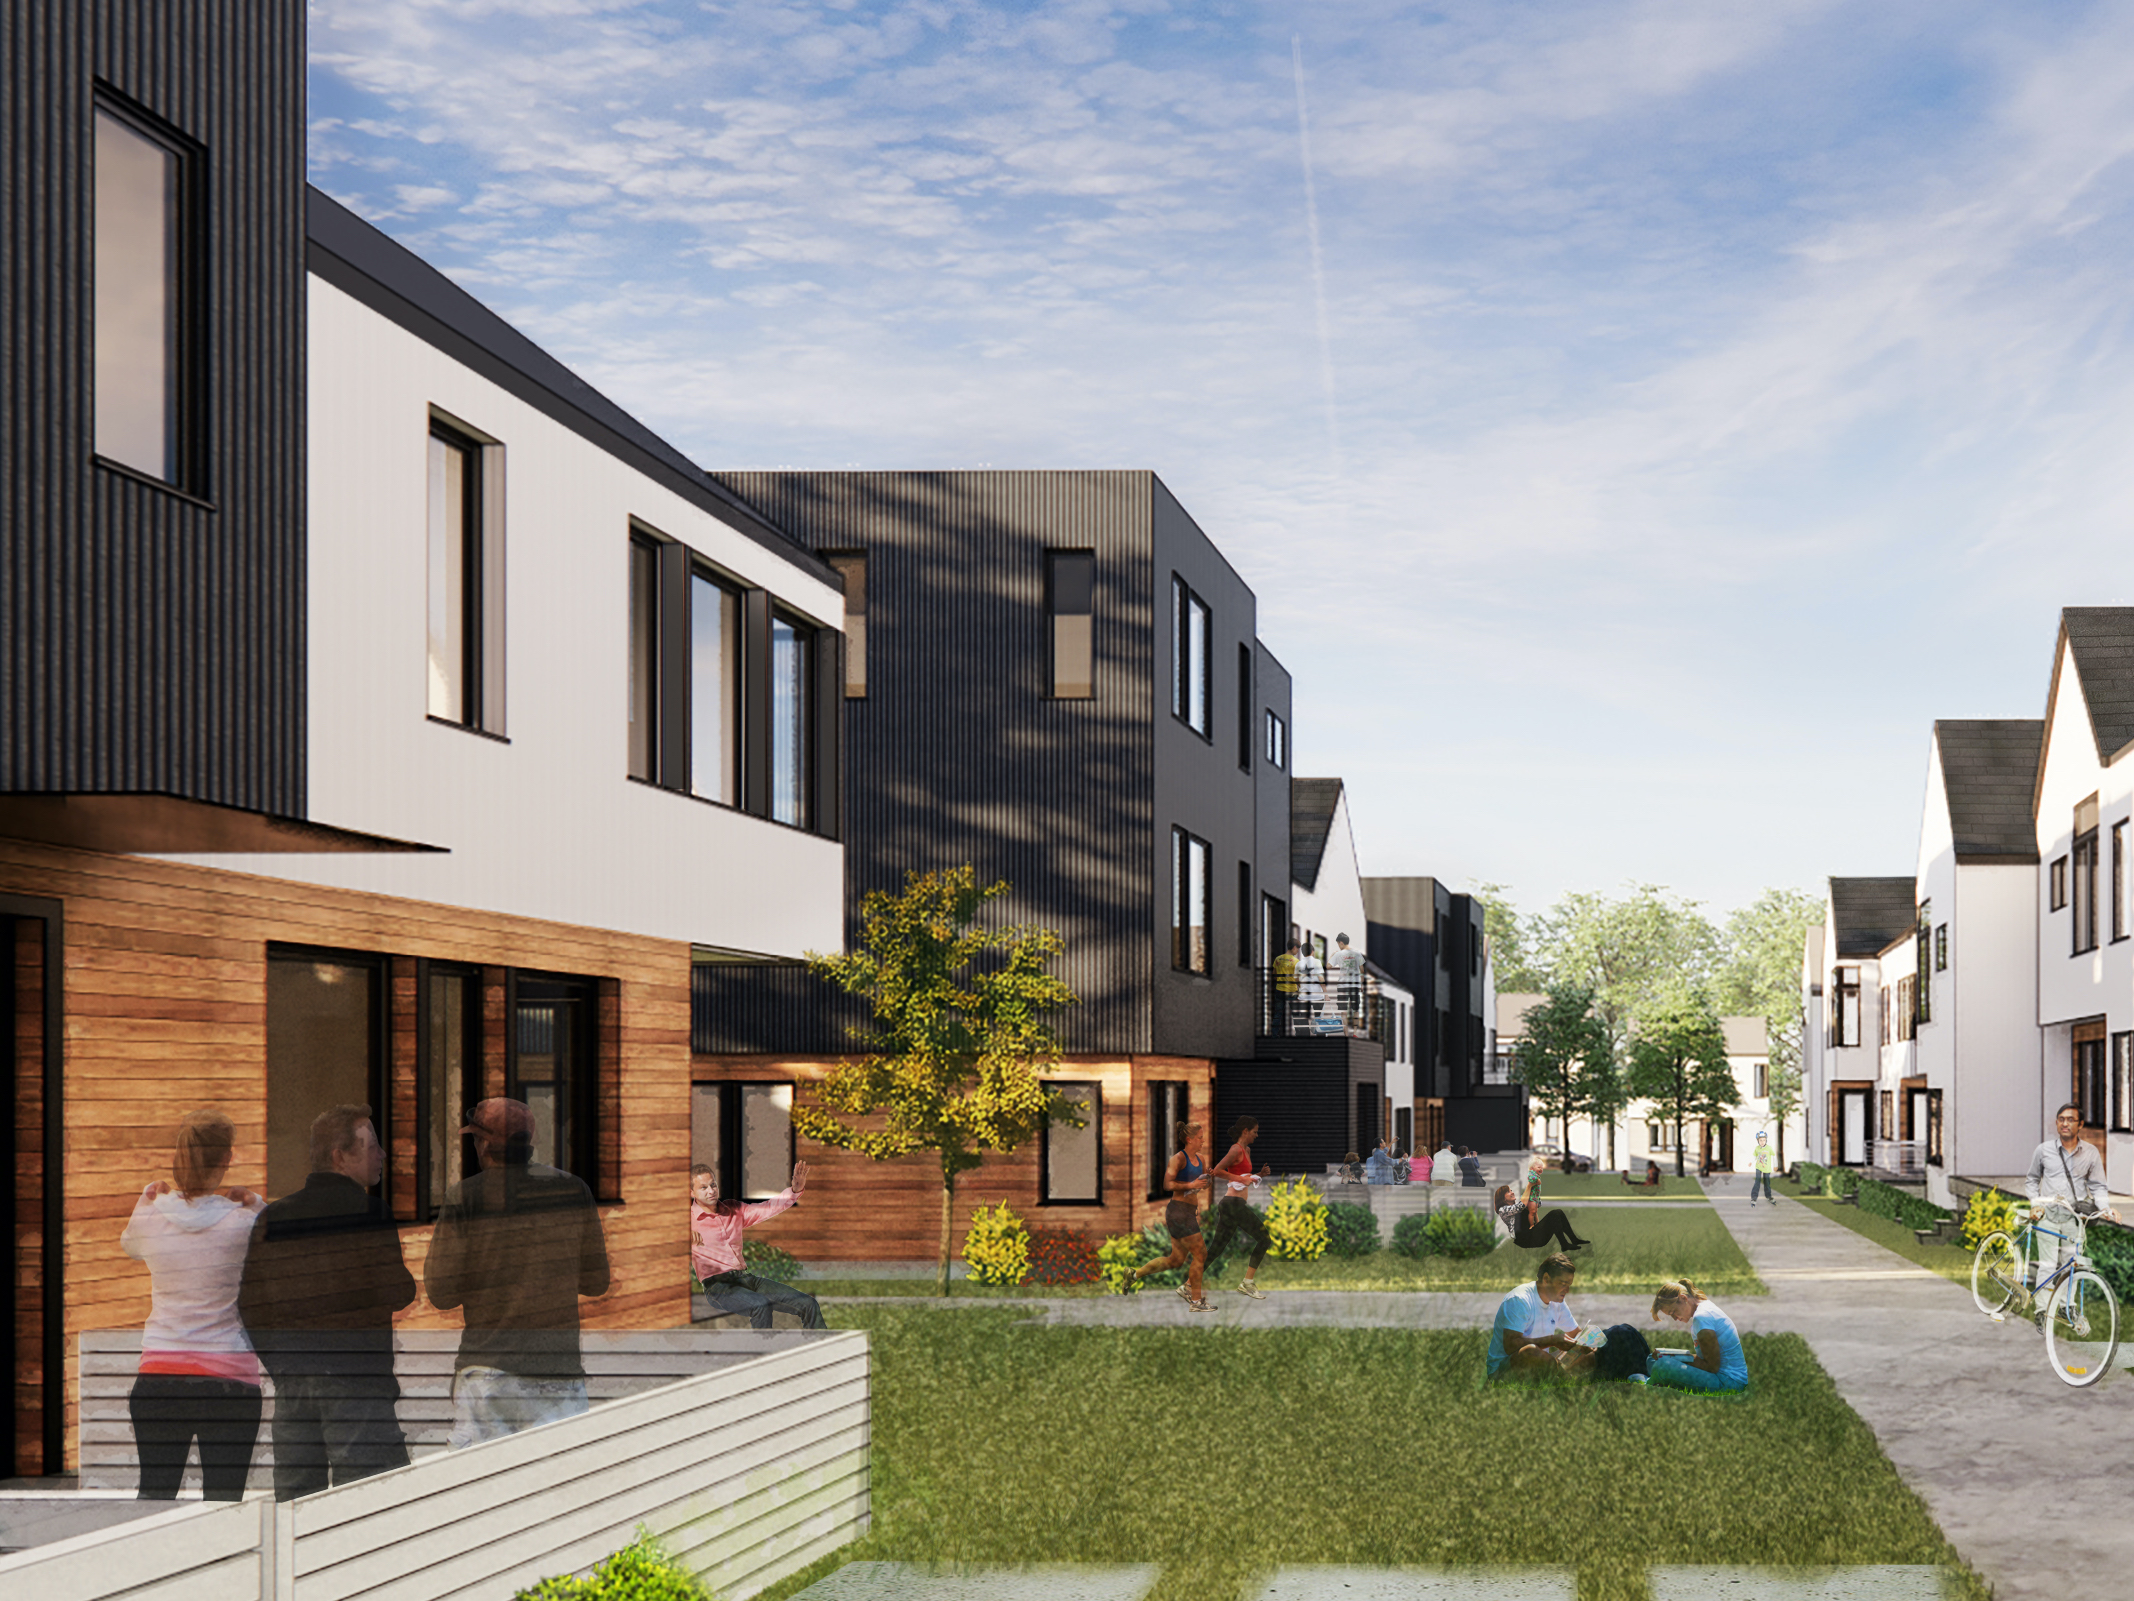 StoryBuilt to Break Ground on $50 Million Housing Development in Austin With Financing Package by Hearthstone and Stearns Bank